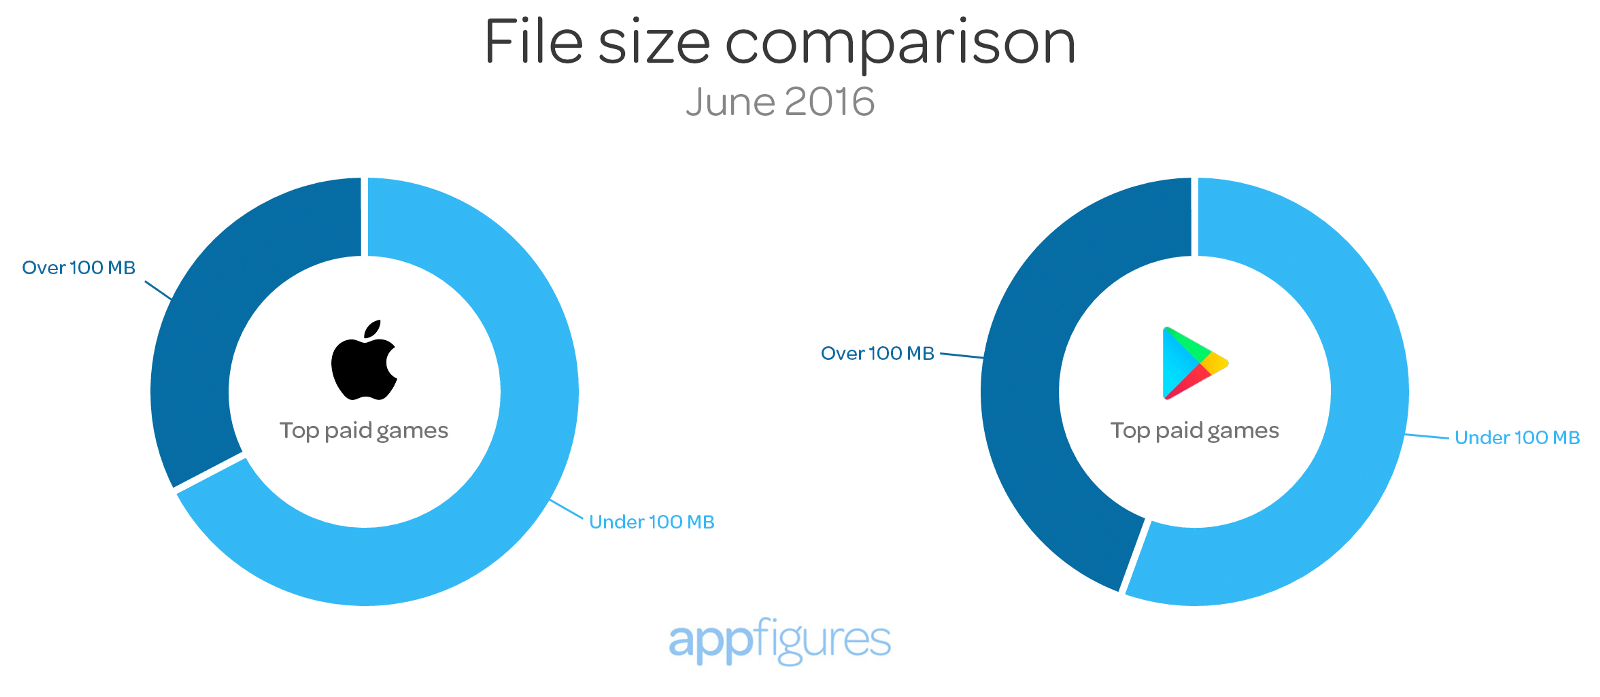 Apps above and below 100MB - App store insights by appFigures